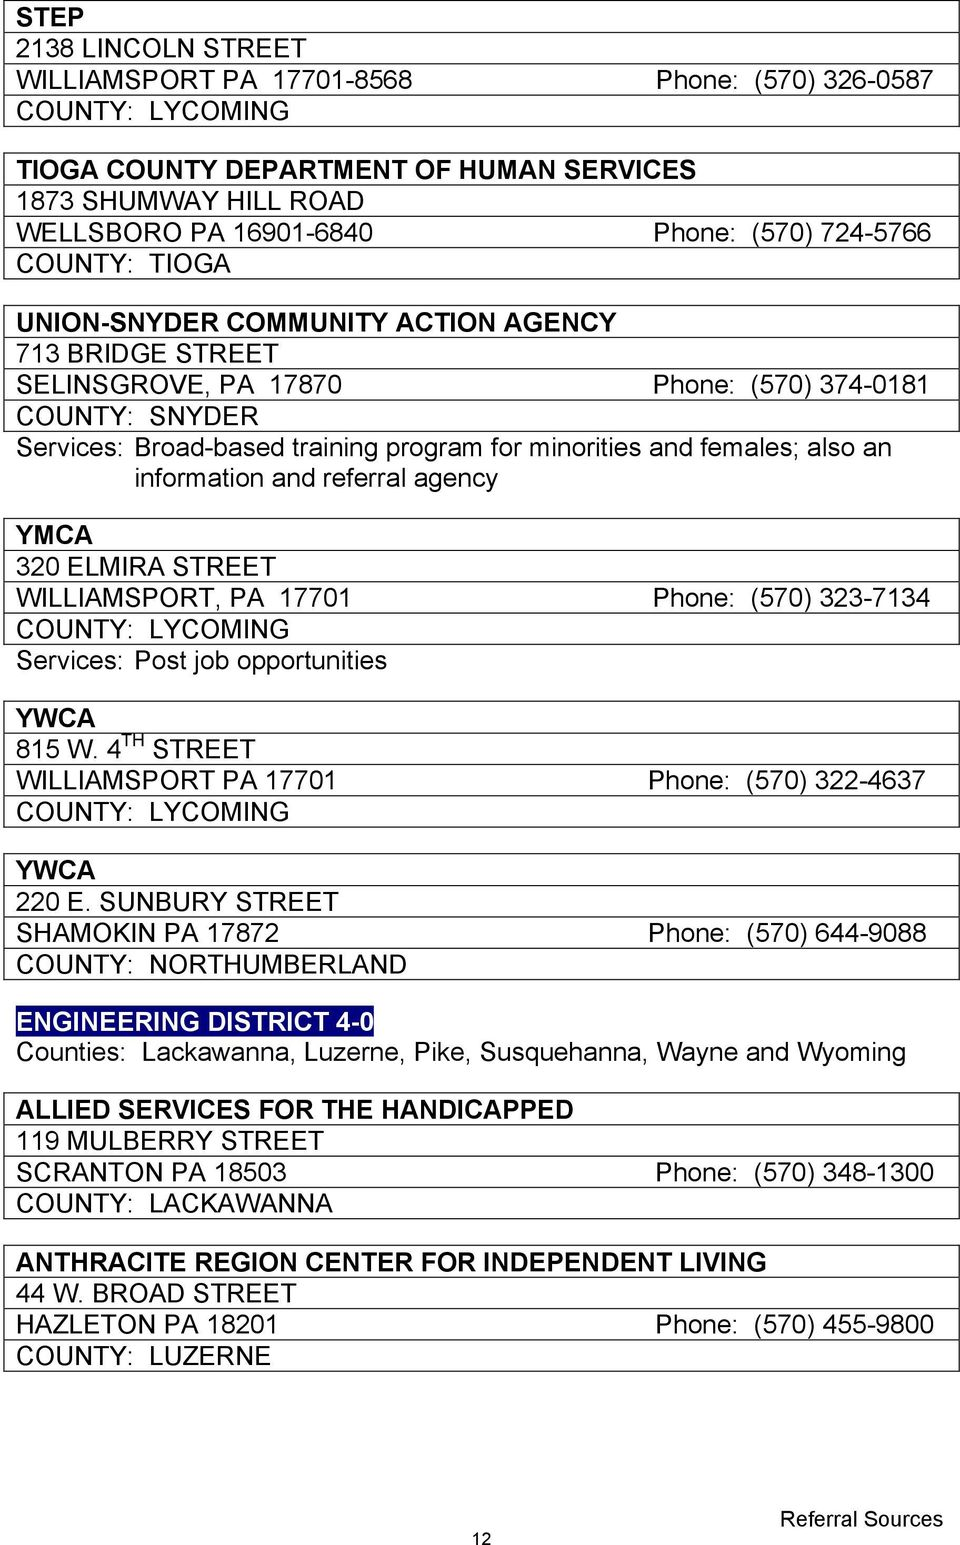 females; also an information and referral agency YMCA 320 ELMIRA STREET WILLIAMSPORT, PA 17701 Phone: (570) 323-7134 COUNTY: LYCOMING Services: Post job opportunities YWCA 815 W.